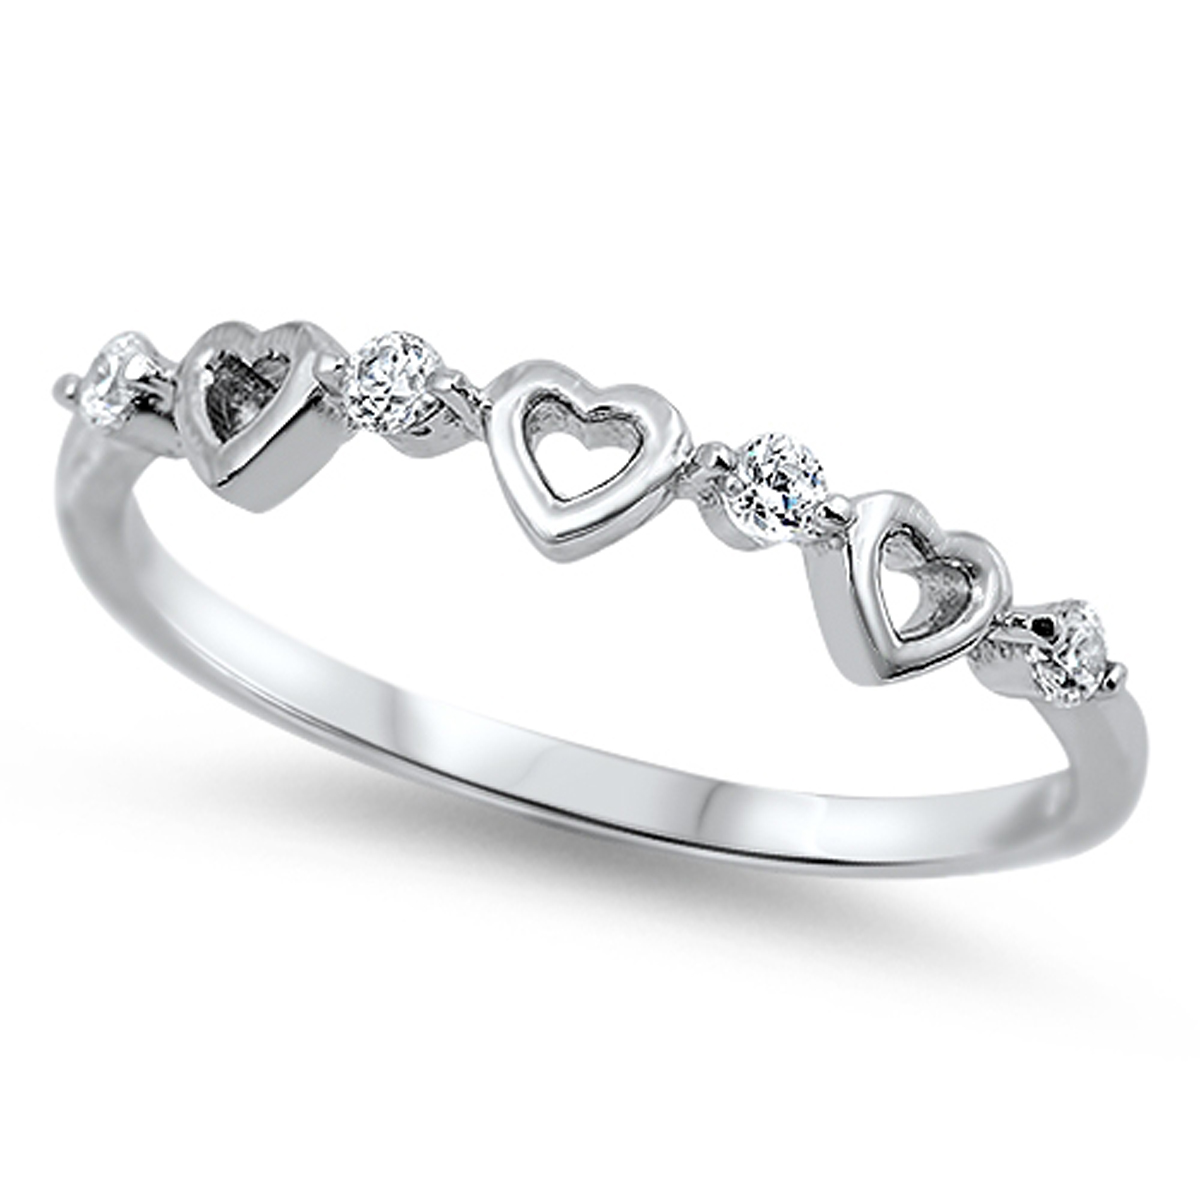 Sterling Silver Women's Flawless Colorless Cubic Zirconia Wedding Heart Ring (Sizes 4-10) (Ring Size 4)